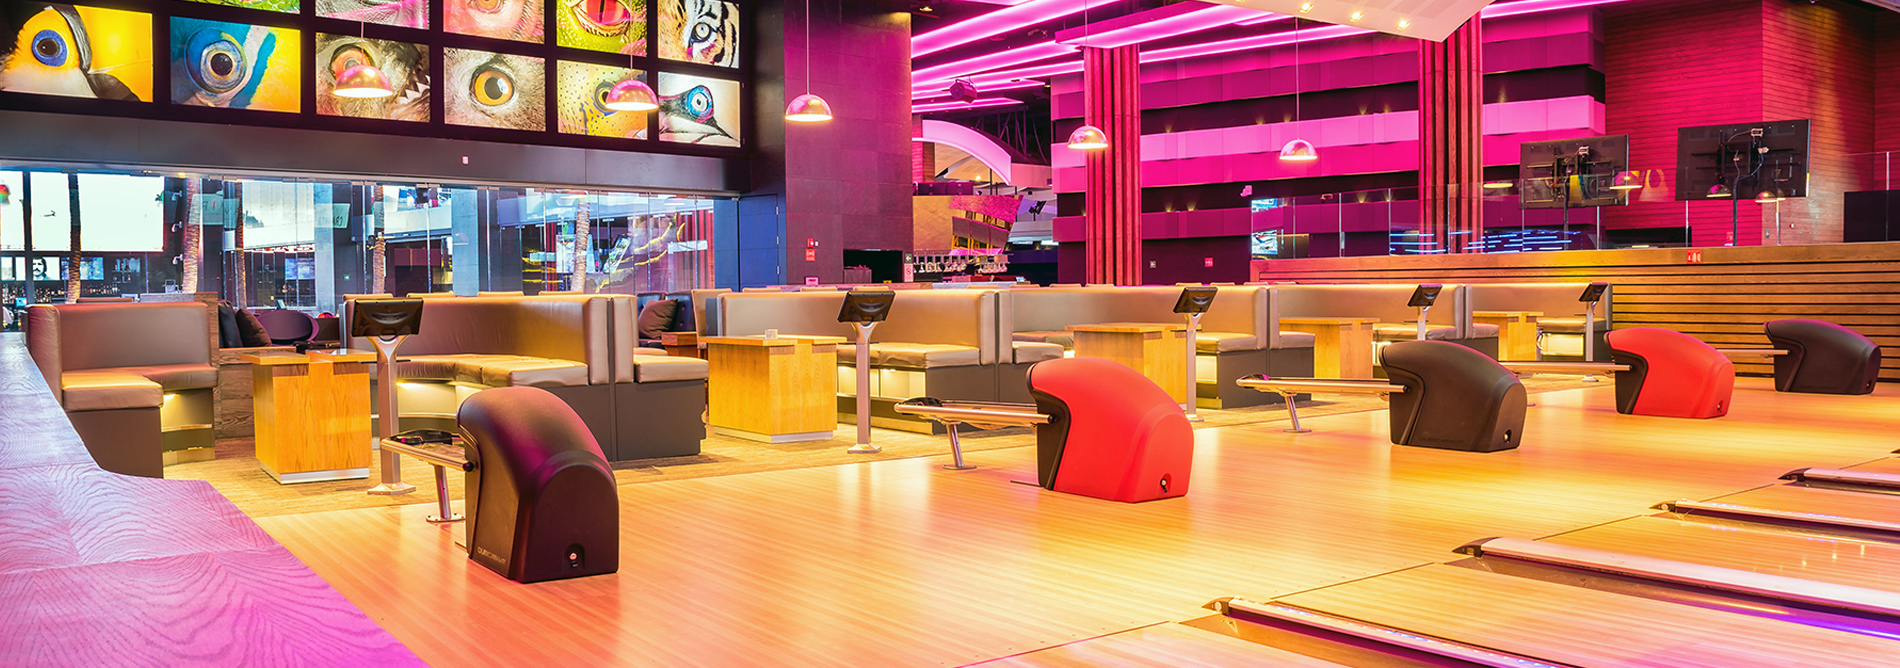 QUBICAAMF Bowling Boutique Alboa Santa Fe Banner